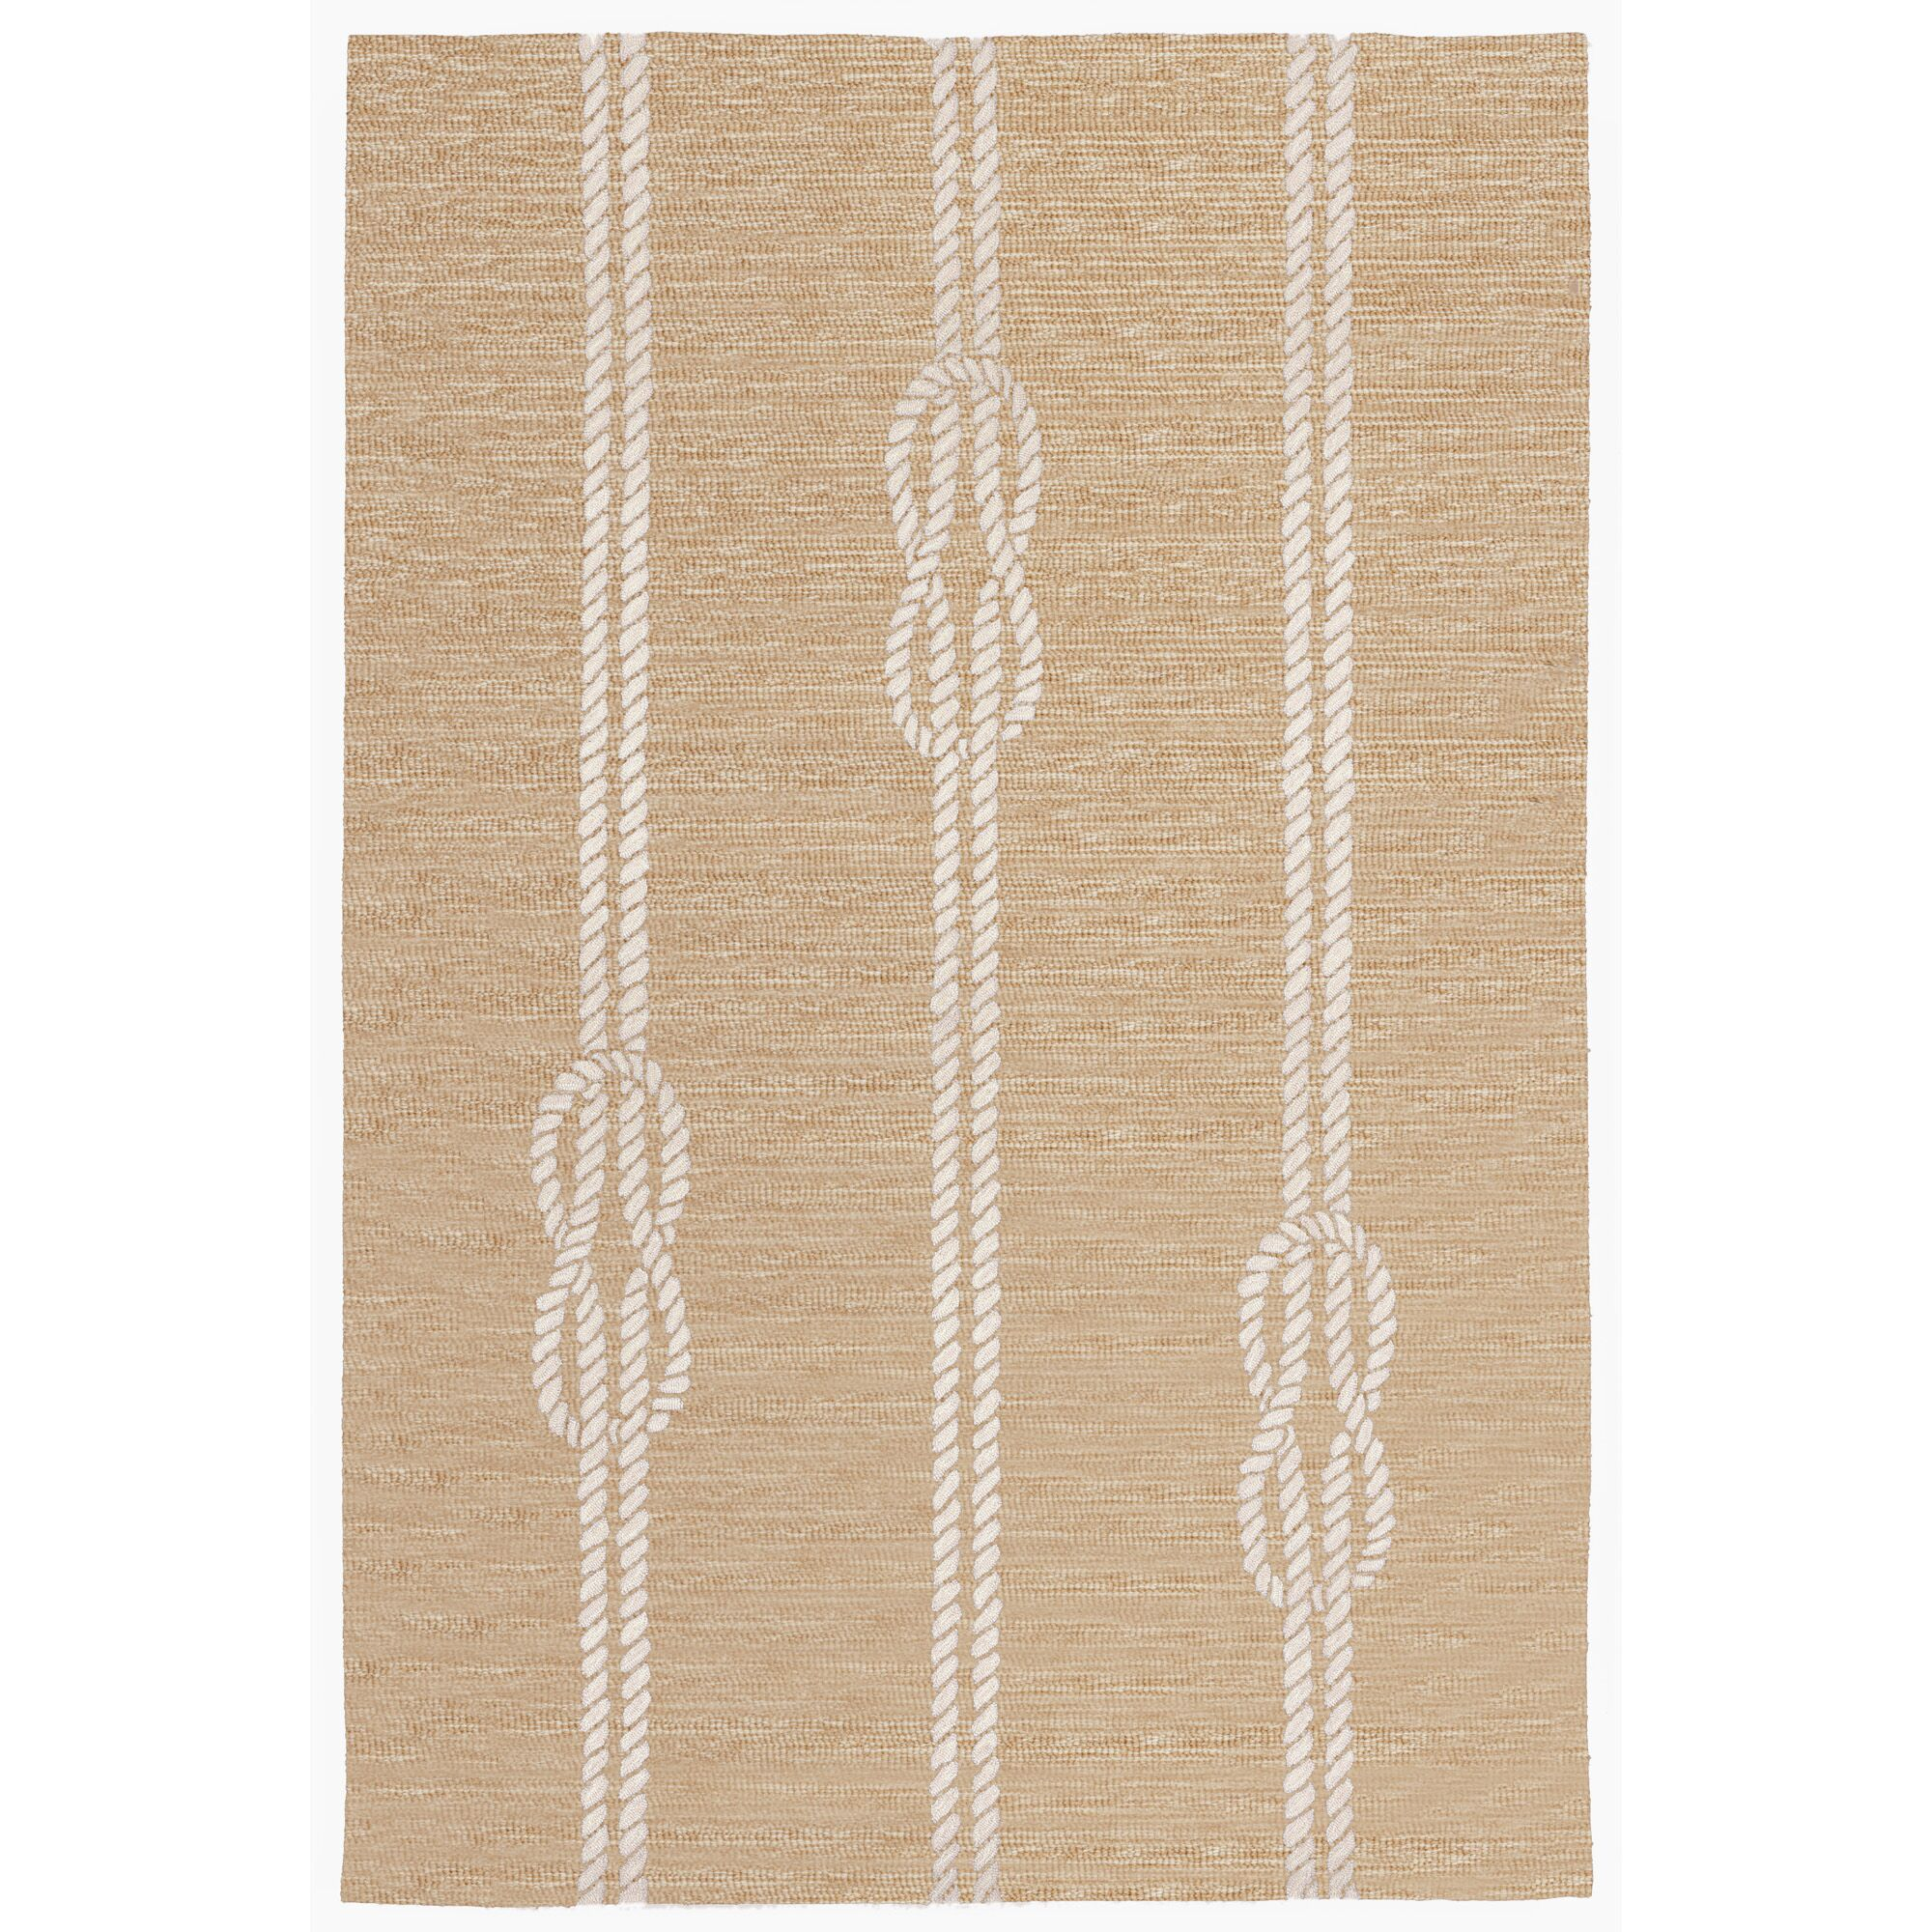 George Hand-Tufted Neutral Indoor/Outdoor Area Rug Rug Size: Rectangle 7'6